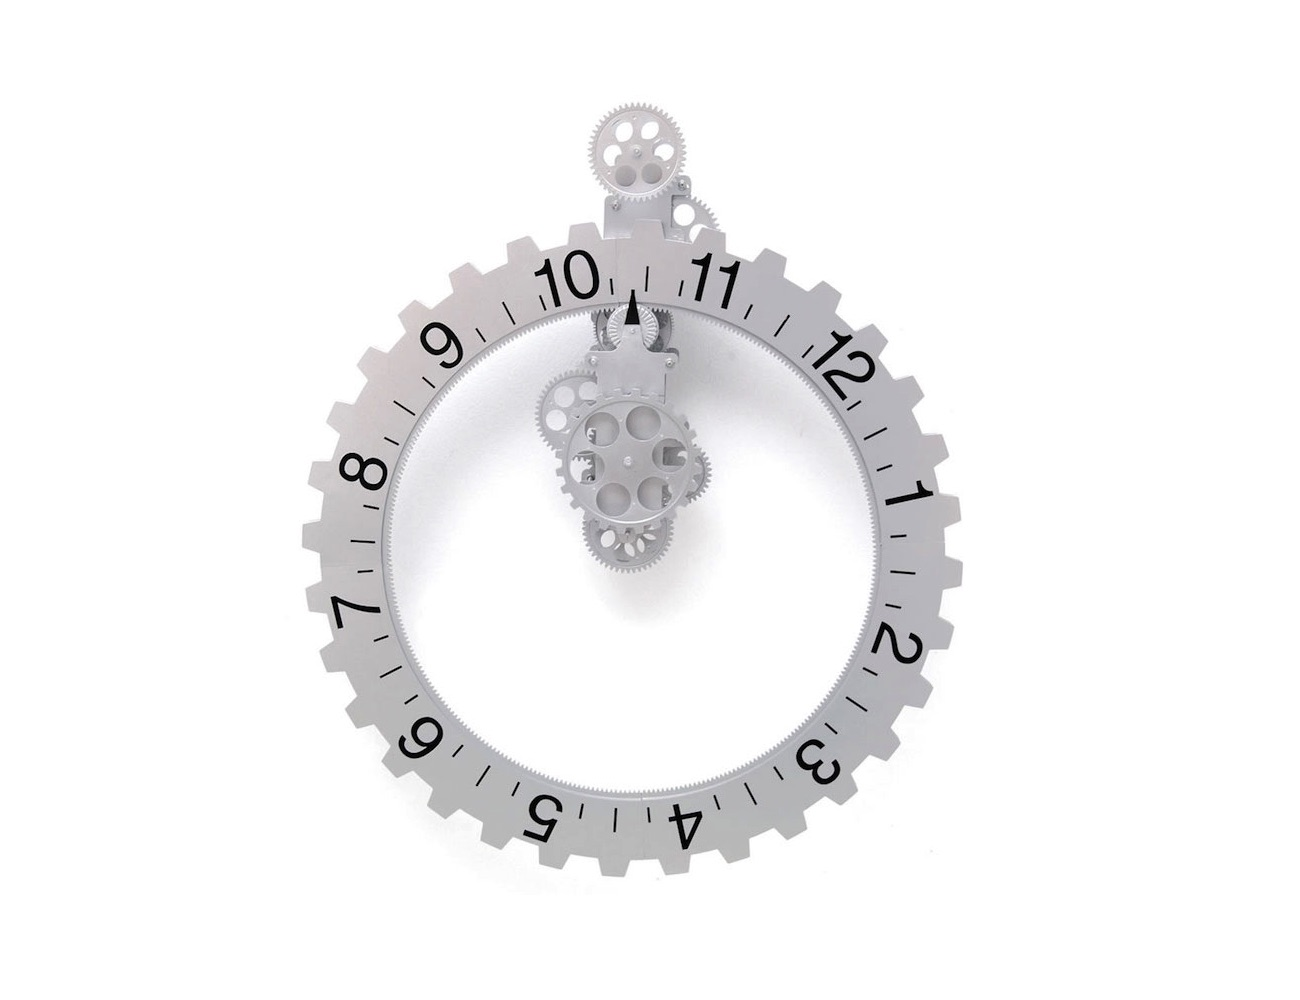 Hands Free Gear Clock – Wall Clock With No Hands